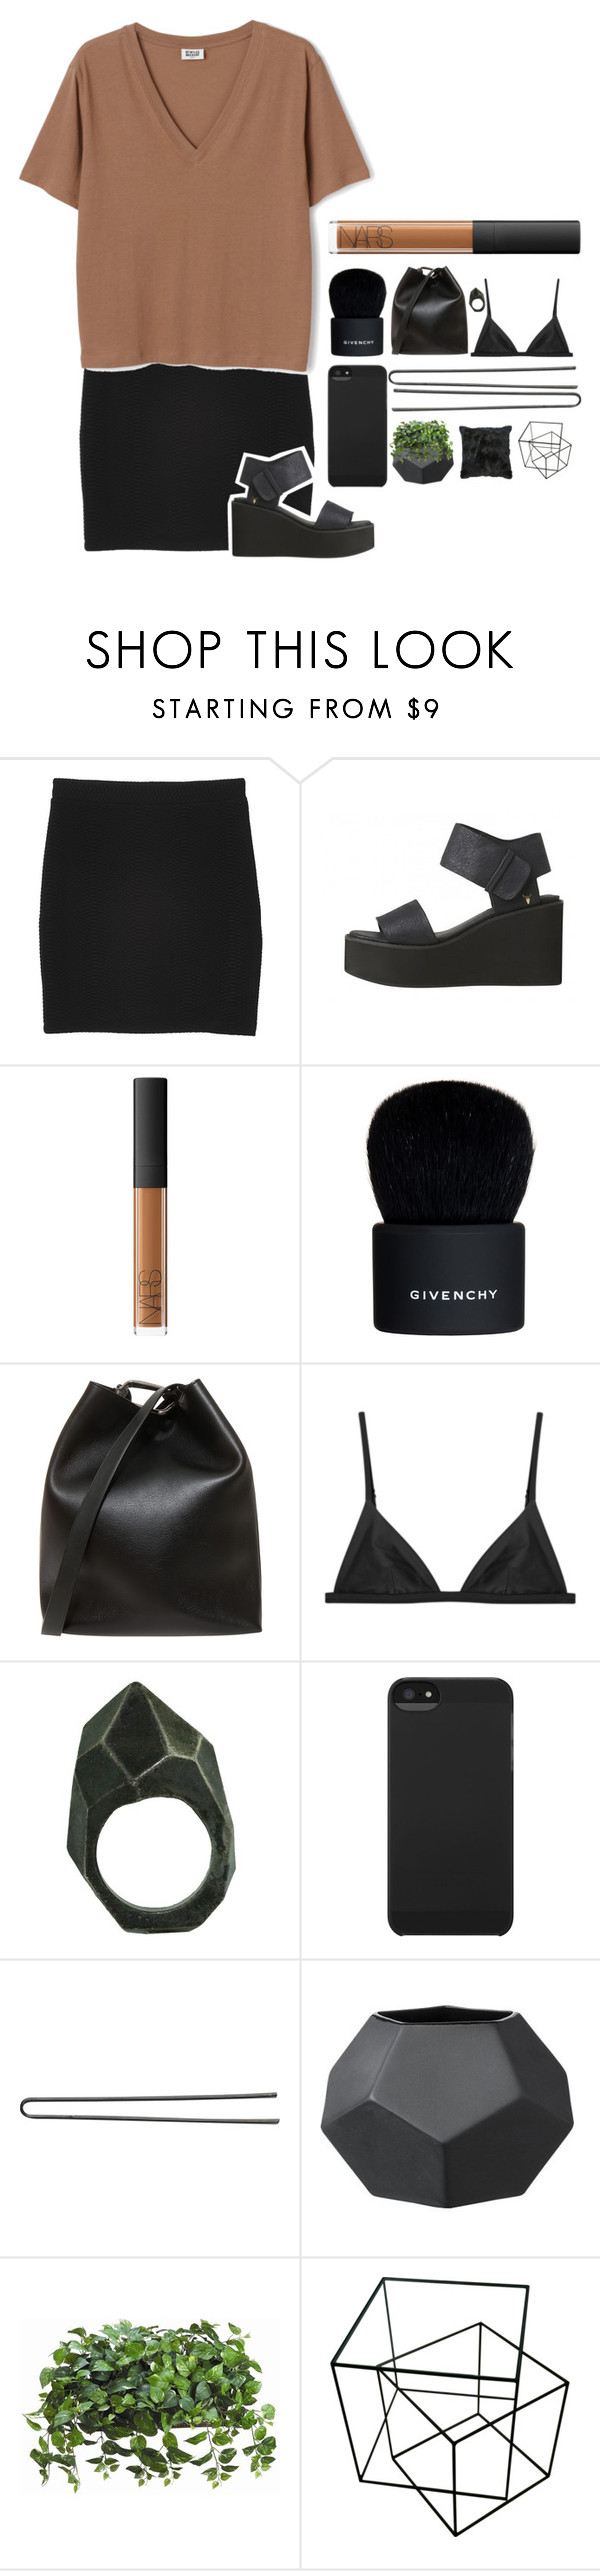 """avery"" by alienxo ❤ liked on Polyvore featuring Monki, NARS Cosmetics, Givenchy, 3.1 Phillip Lim, Lady Grey, Incase and Hershesons"